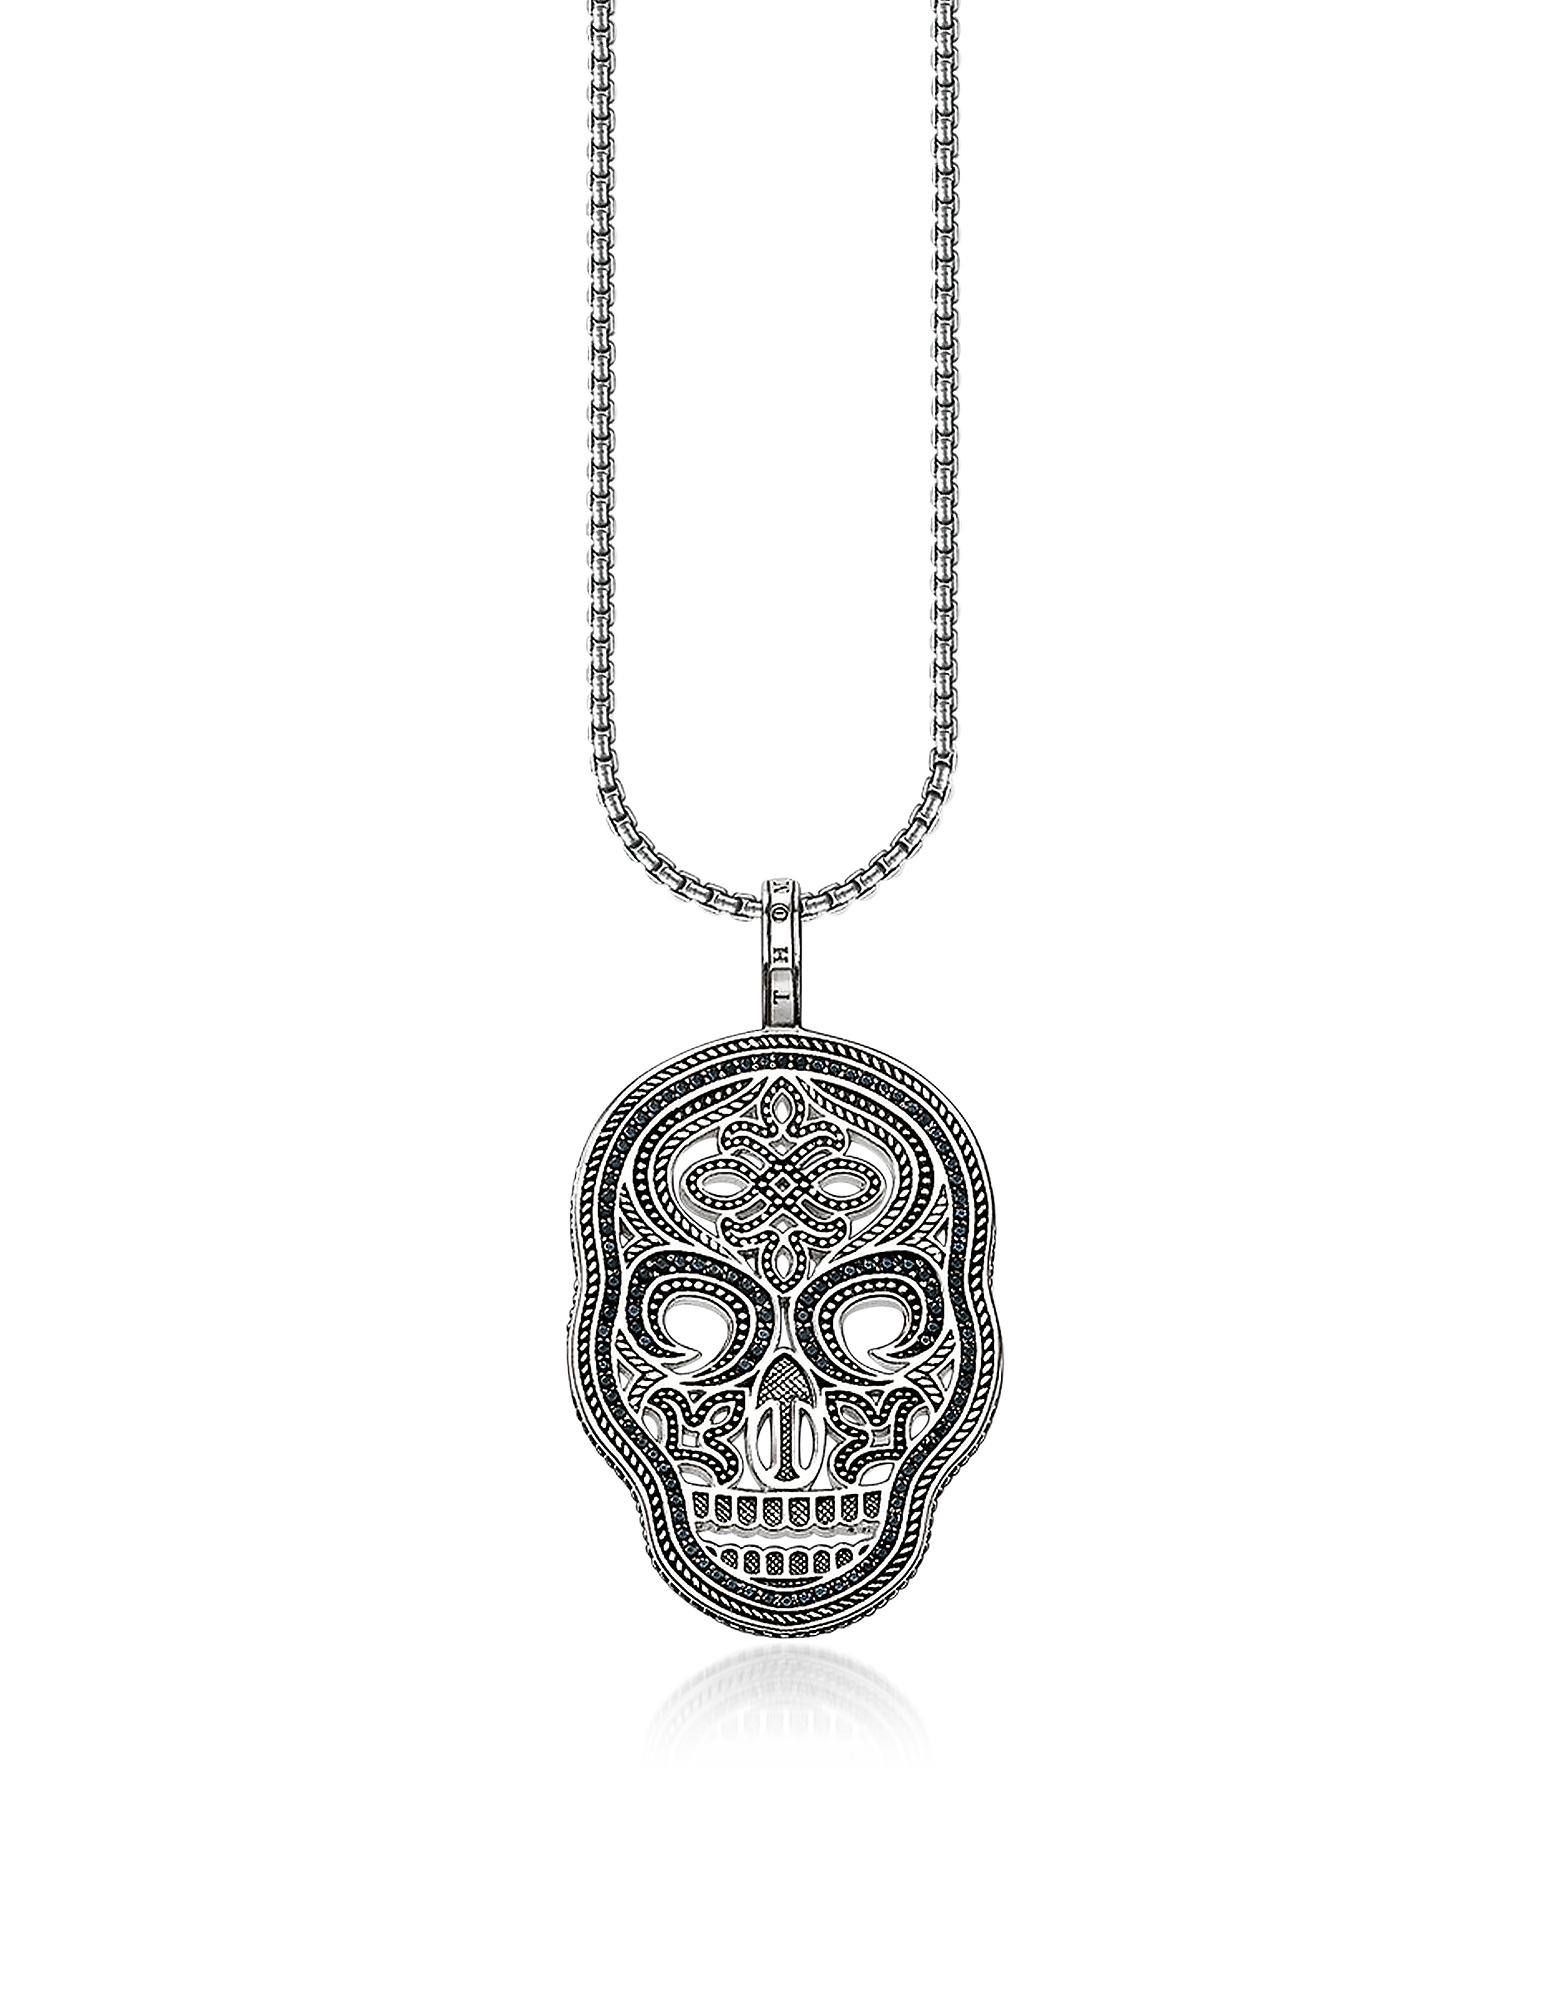 Thomas Sabo Designer Men's Necklaces, Blackened 925 Sterling Silver and Zirconia Pave Necklace w/Skull Mask Pendant